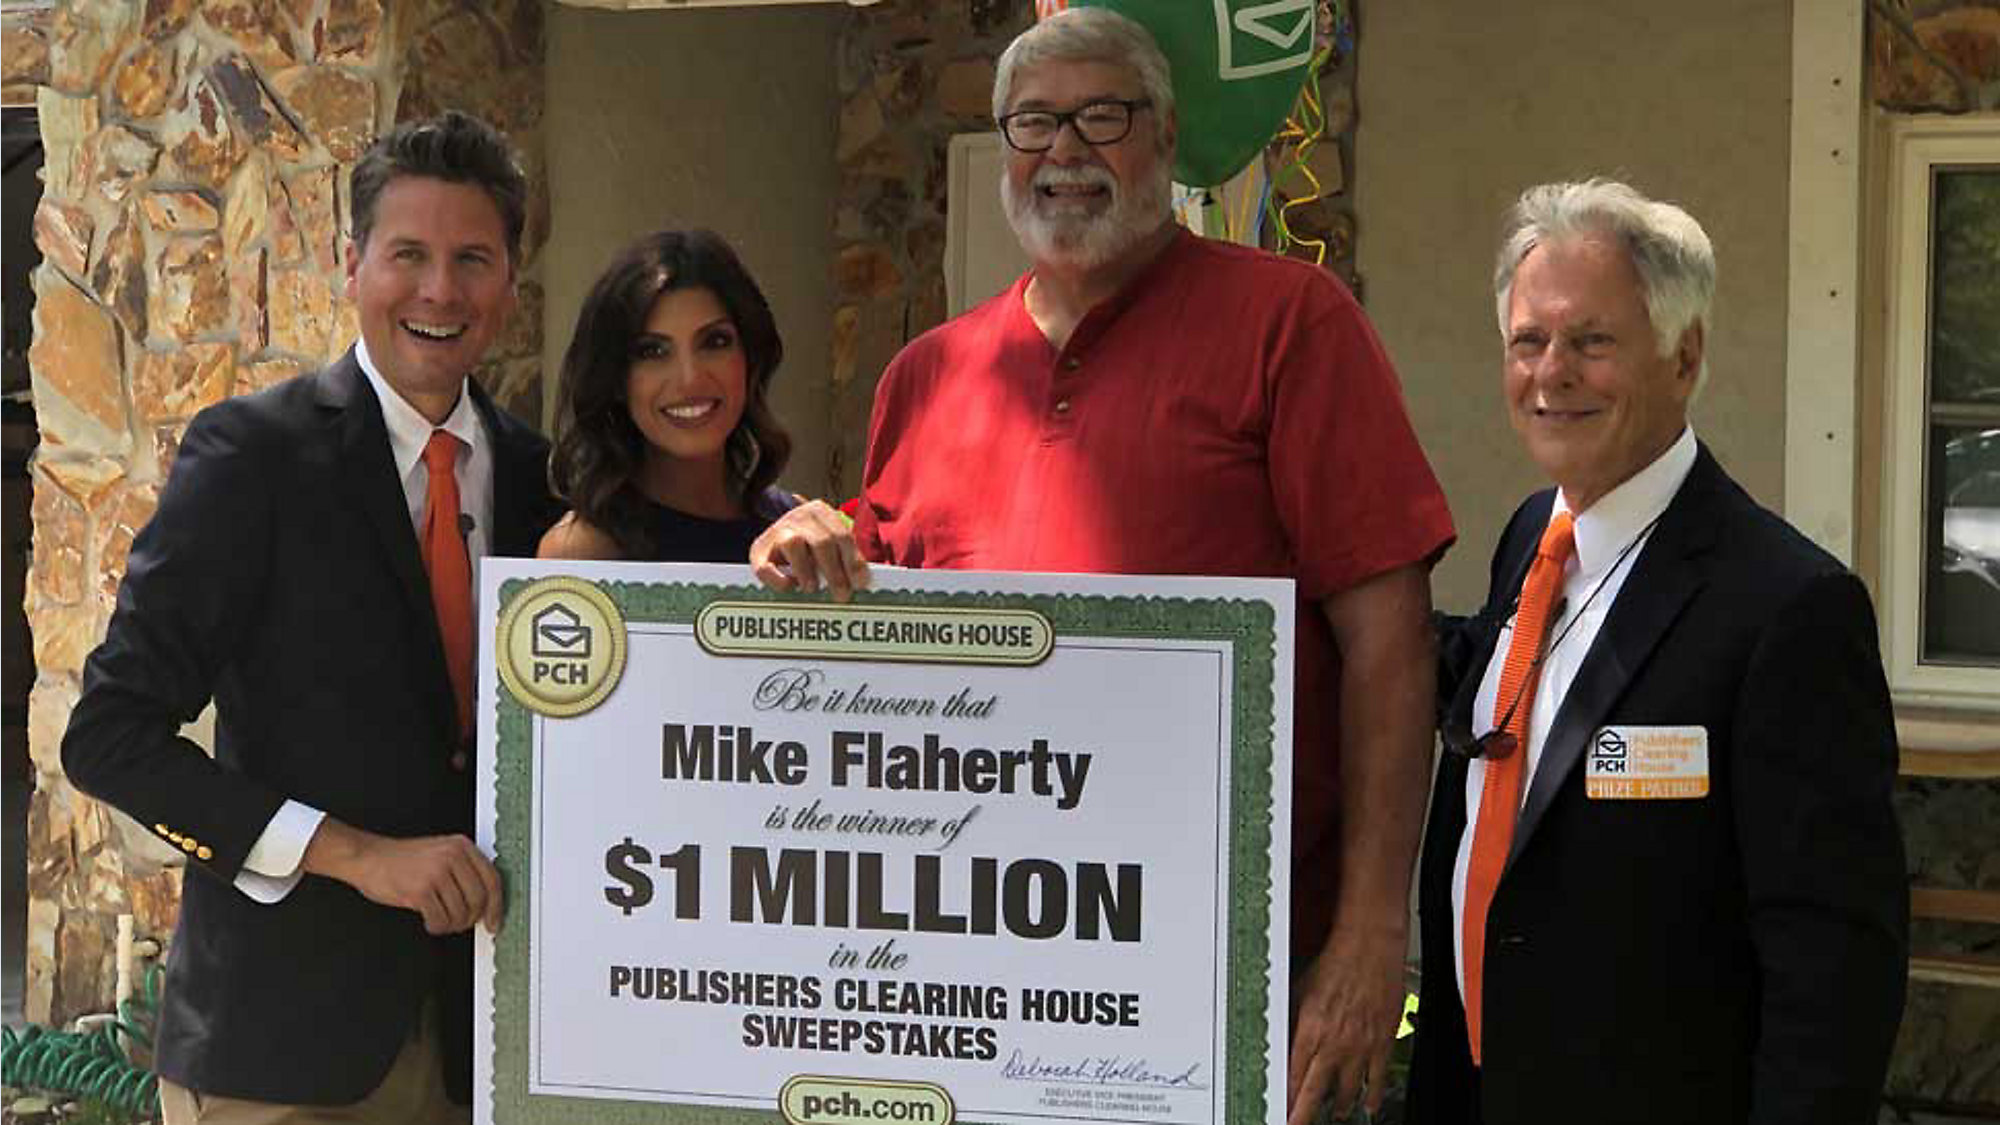 Valrico Man Wins $1 Million from Publishers Clearing House